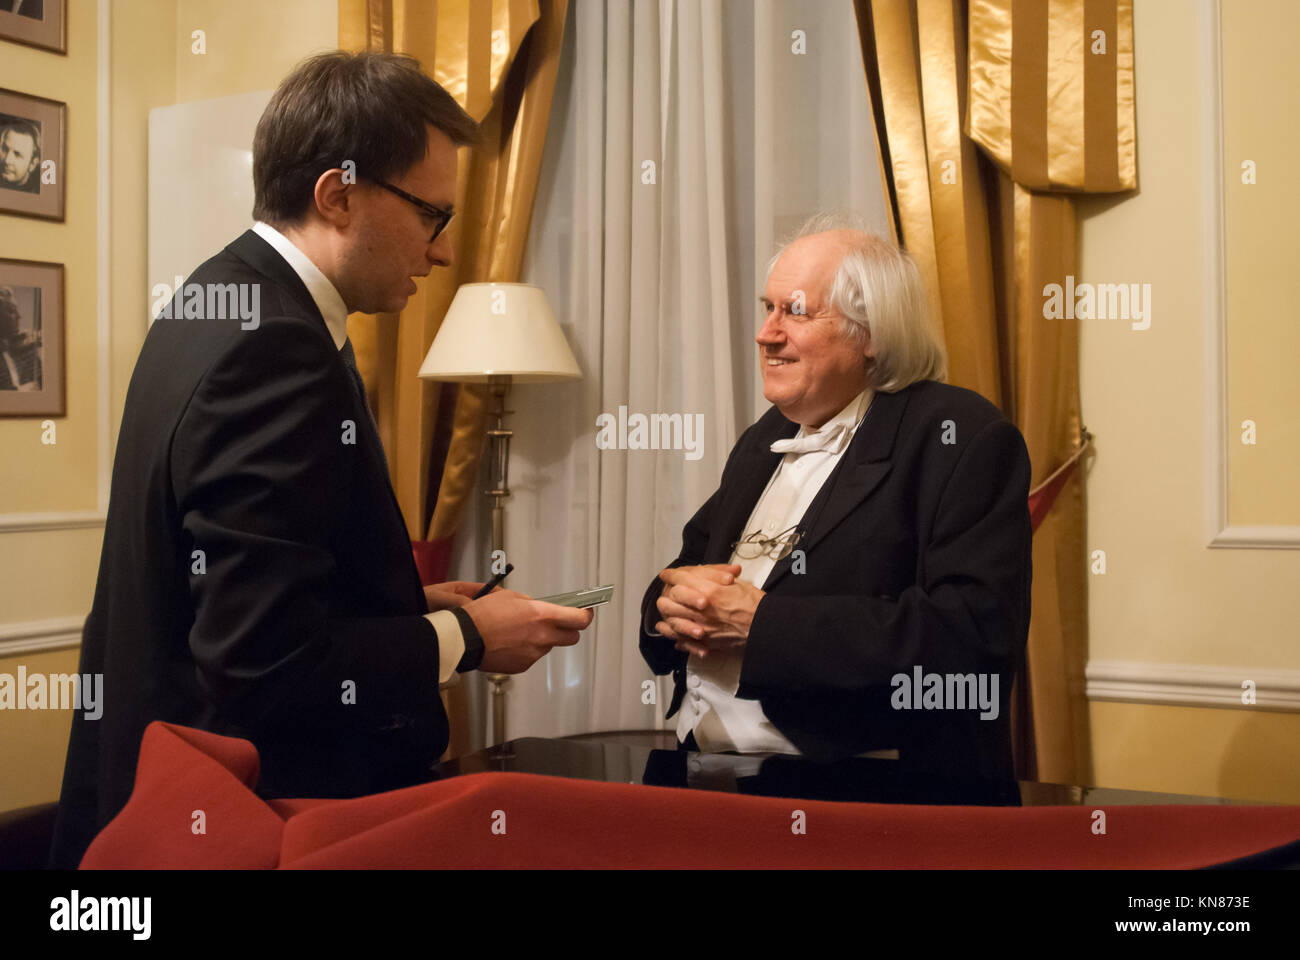 Warsaw, Poland. 10th Dec, 2017. Recognized as a the best living pianist - Grigory Sokolov talks with fans after - Stock Image